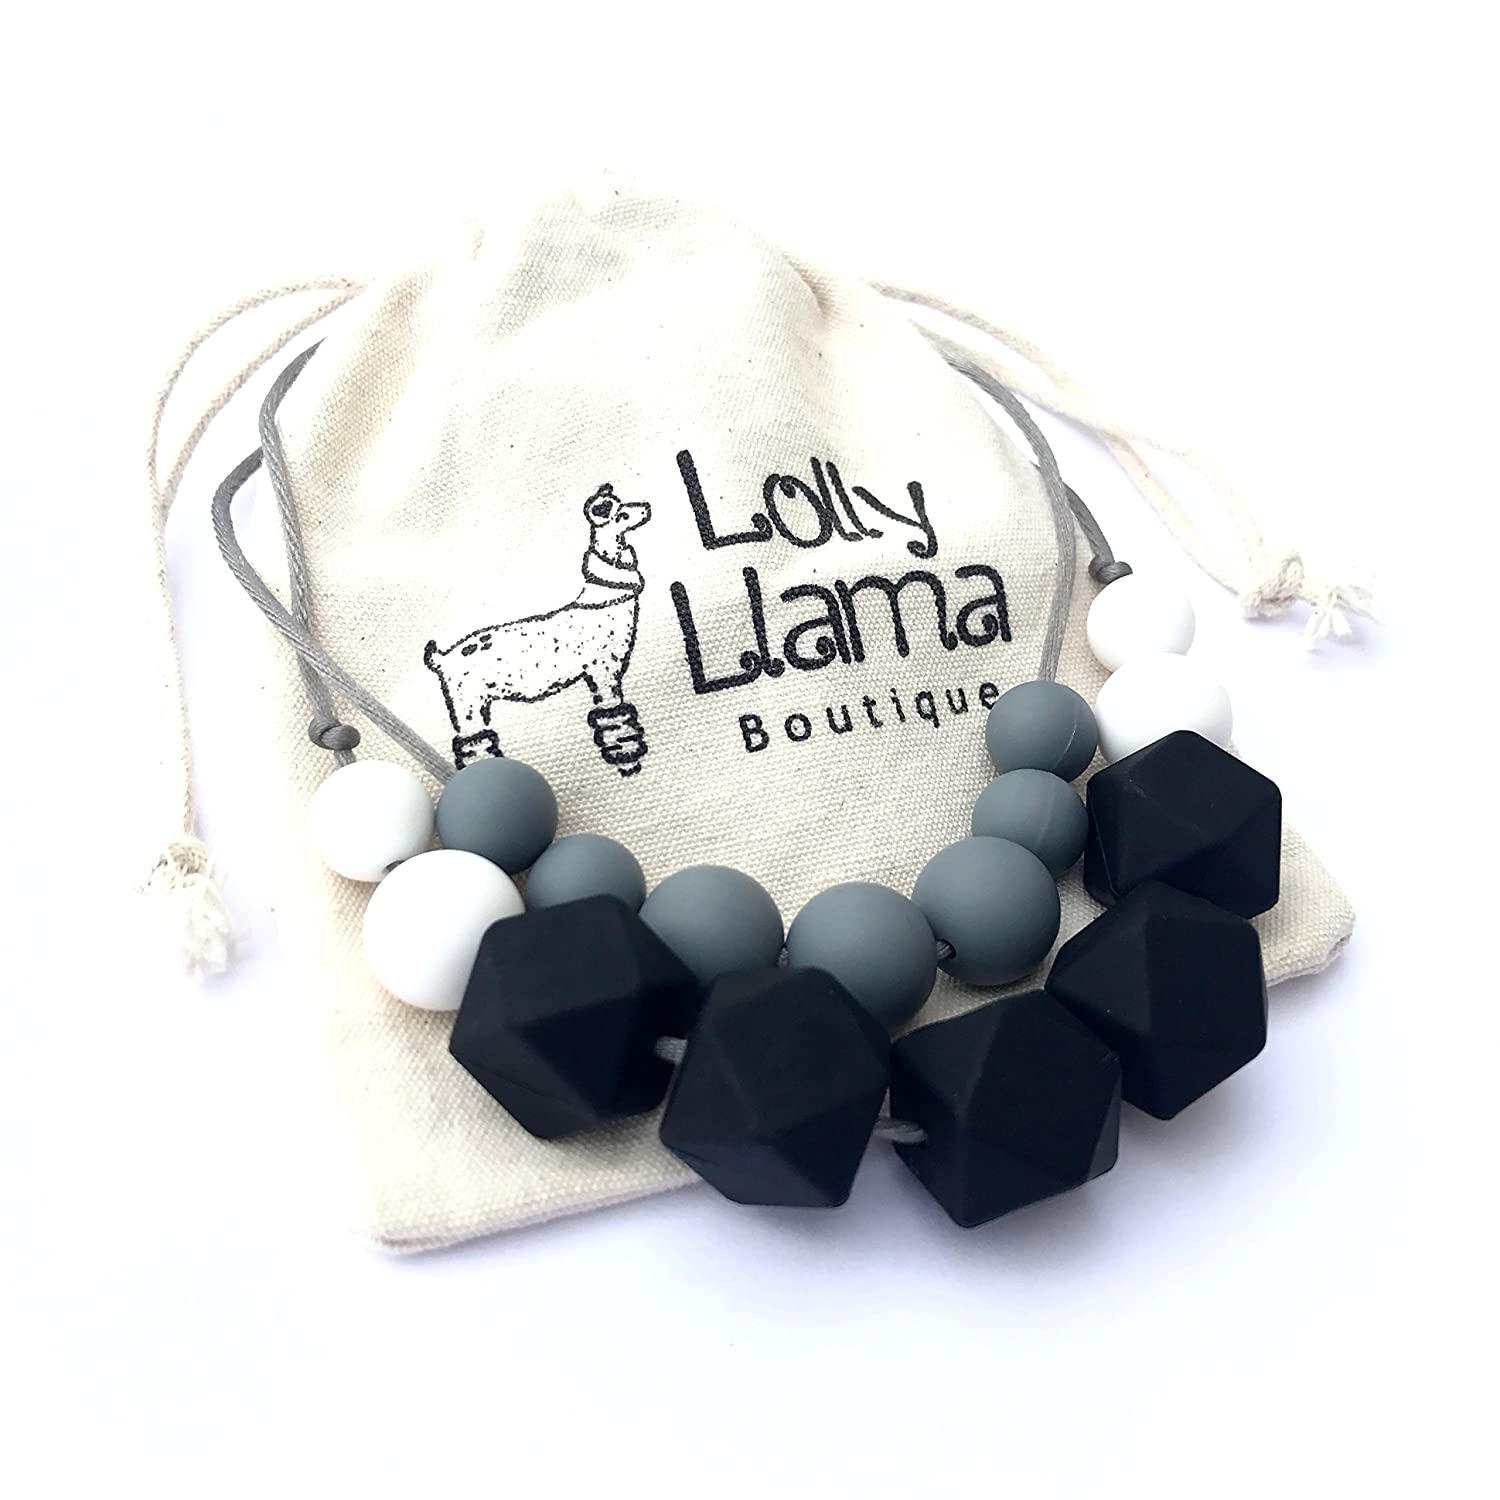 Top 8 Best Teething Necklace For Mom (2020 Reviews & Buying Guide) 7